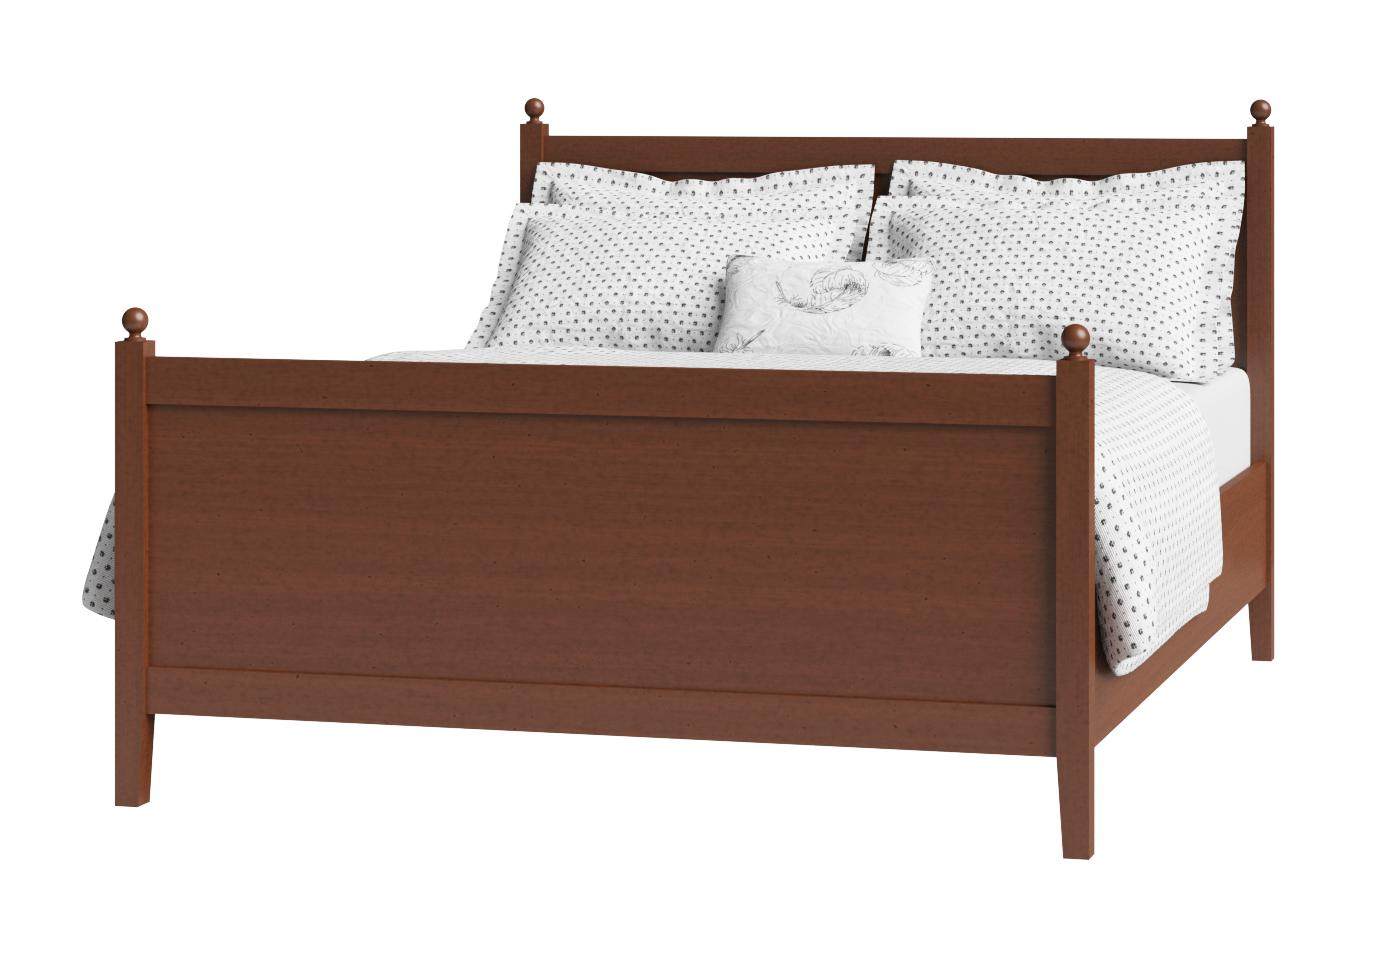 Cutout of Marbella wood bed in a dark cherry finish